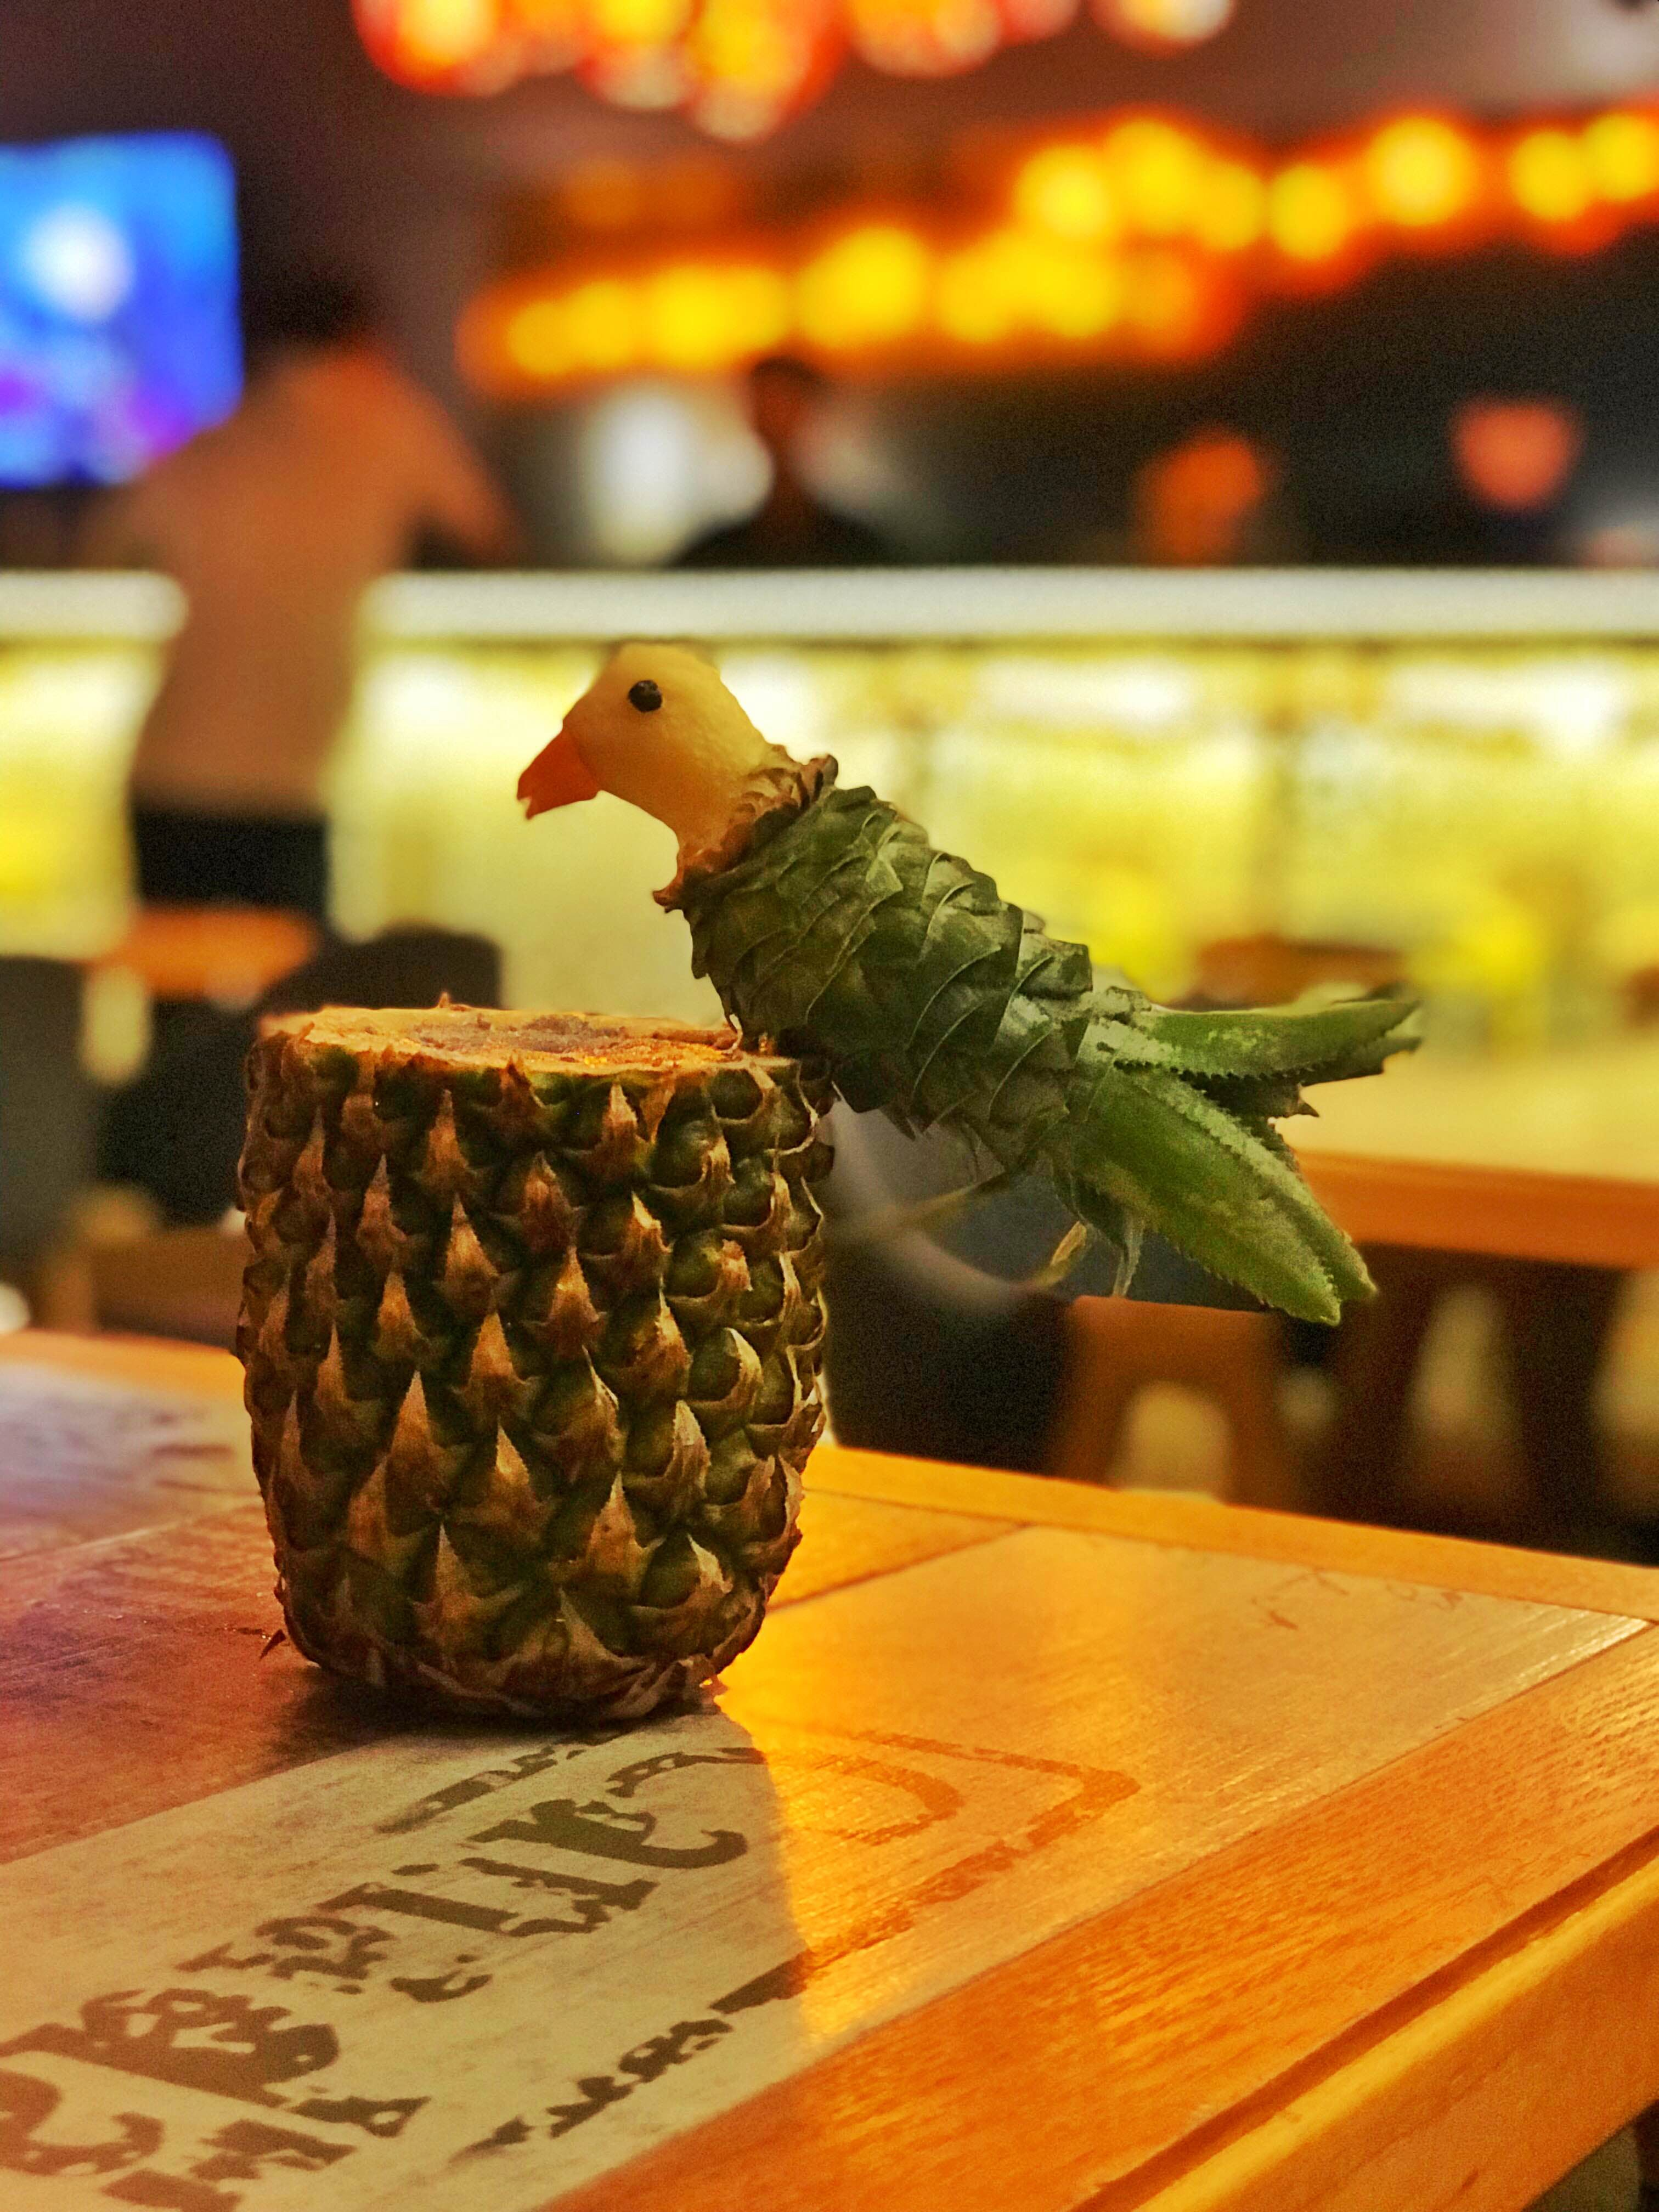 Pineapple,Ananas,Plant,Conifer cone,Table,Bird,Fruit,Barware